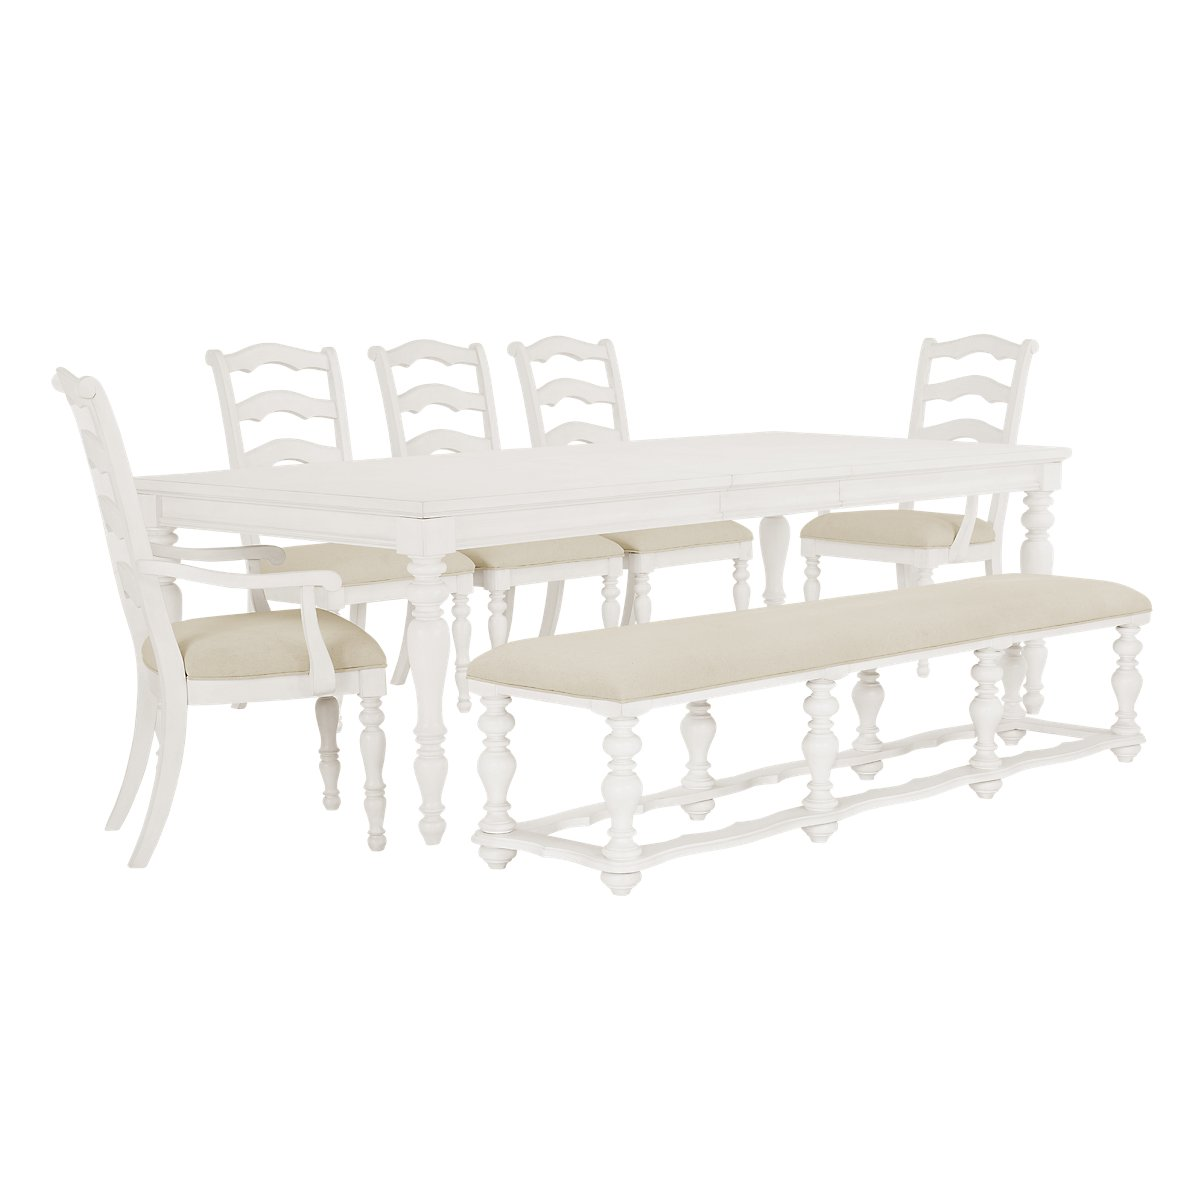 Savannah Ivory Wood Table, 4 Chairs & Bench